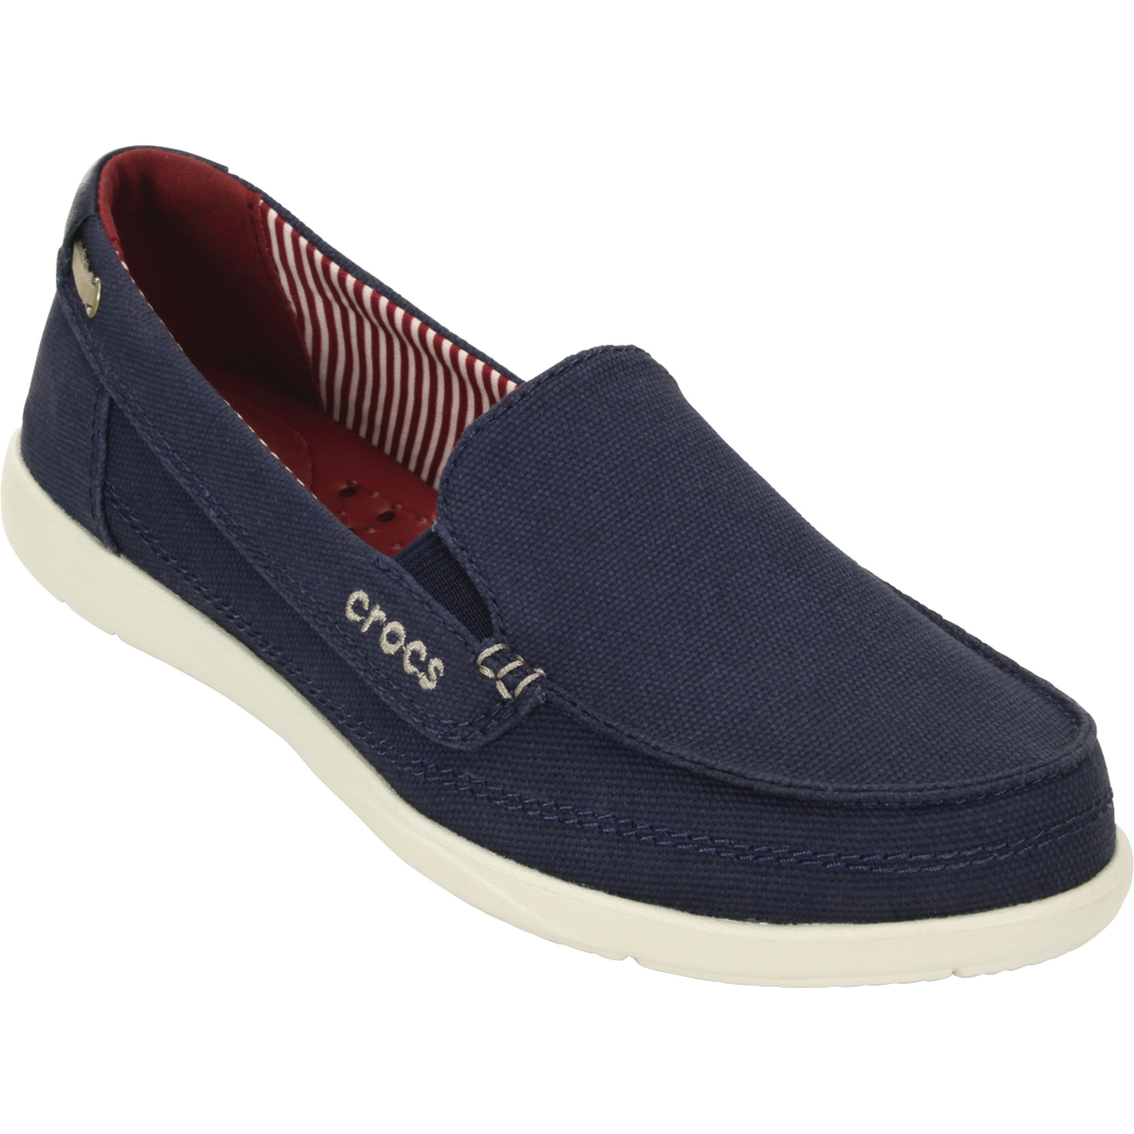 Crocs Women's Walu Canvas Loafers | Casuals | Shoes | Shop ...